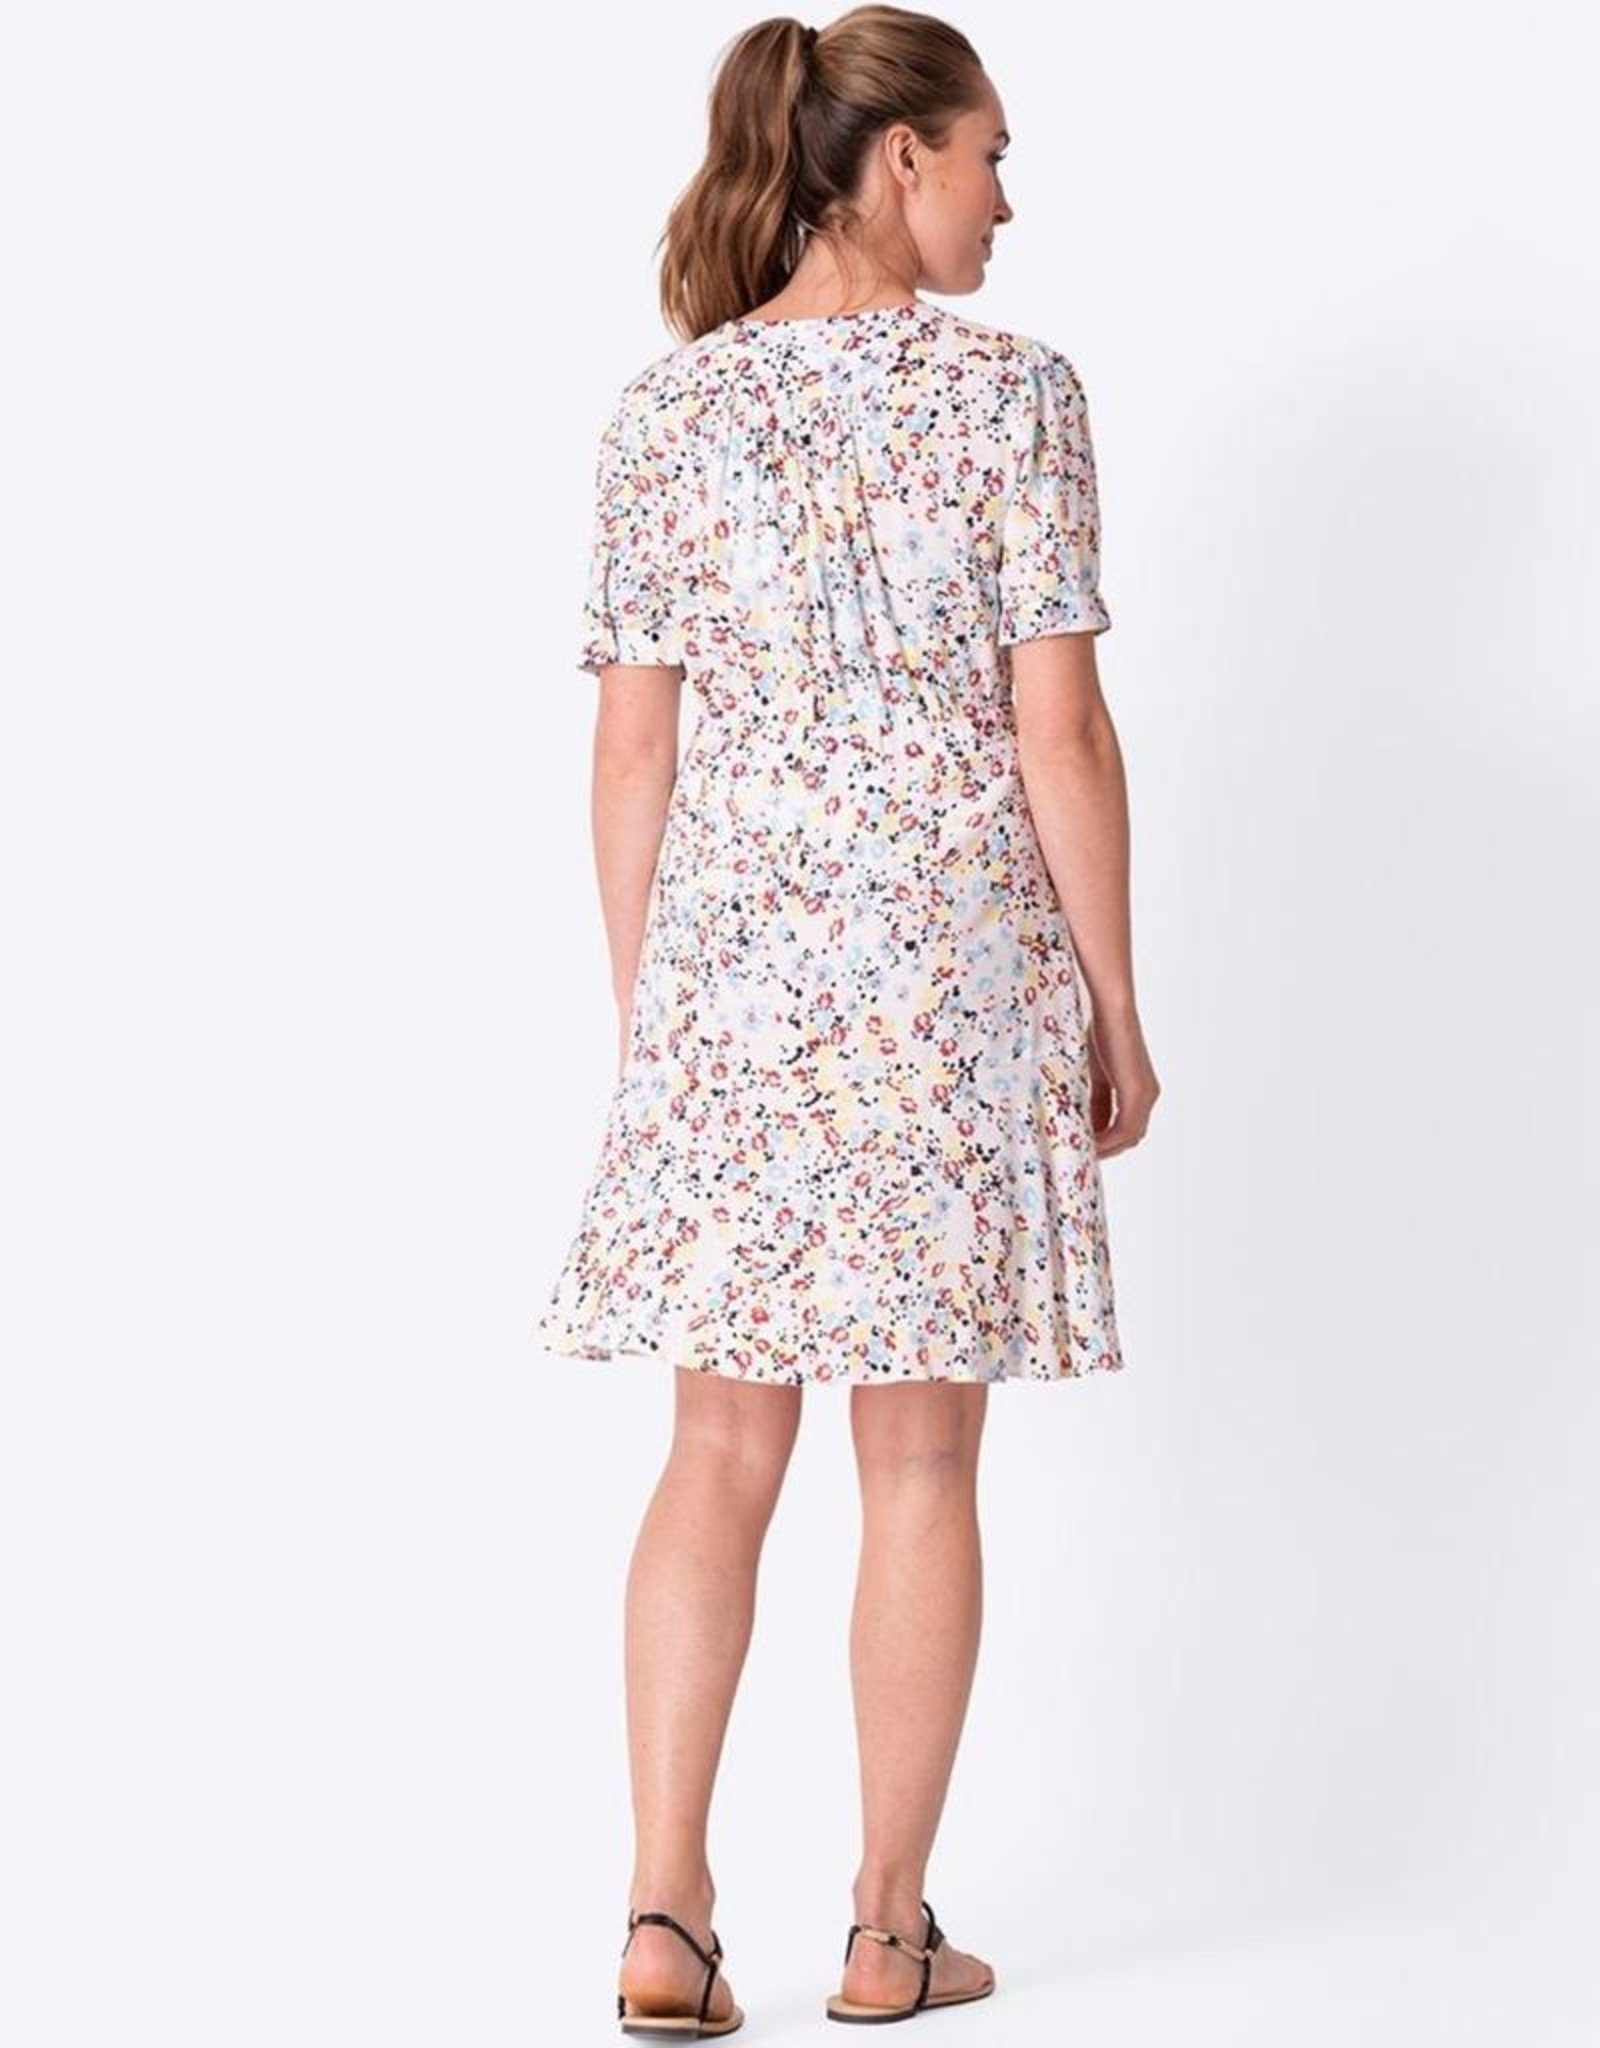 Seraphine White Floral Front Tie Maternity Dress